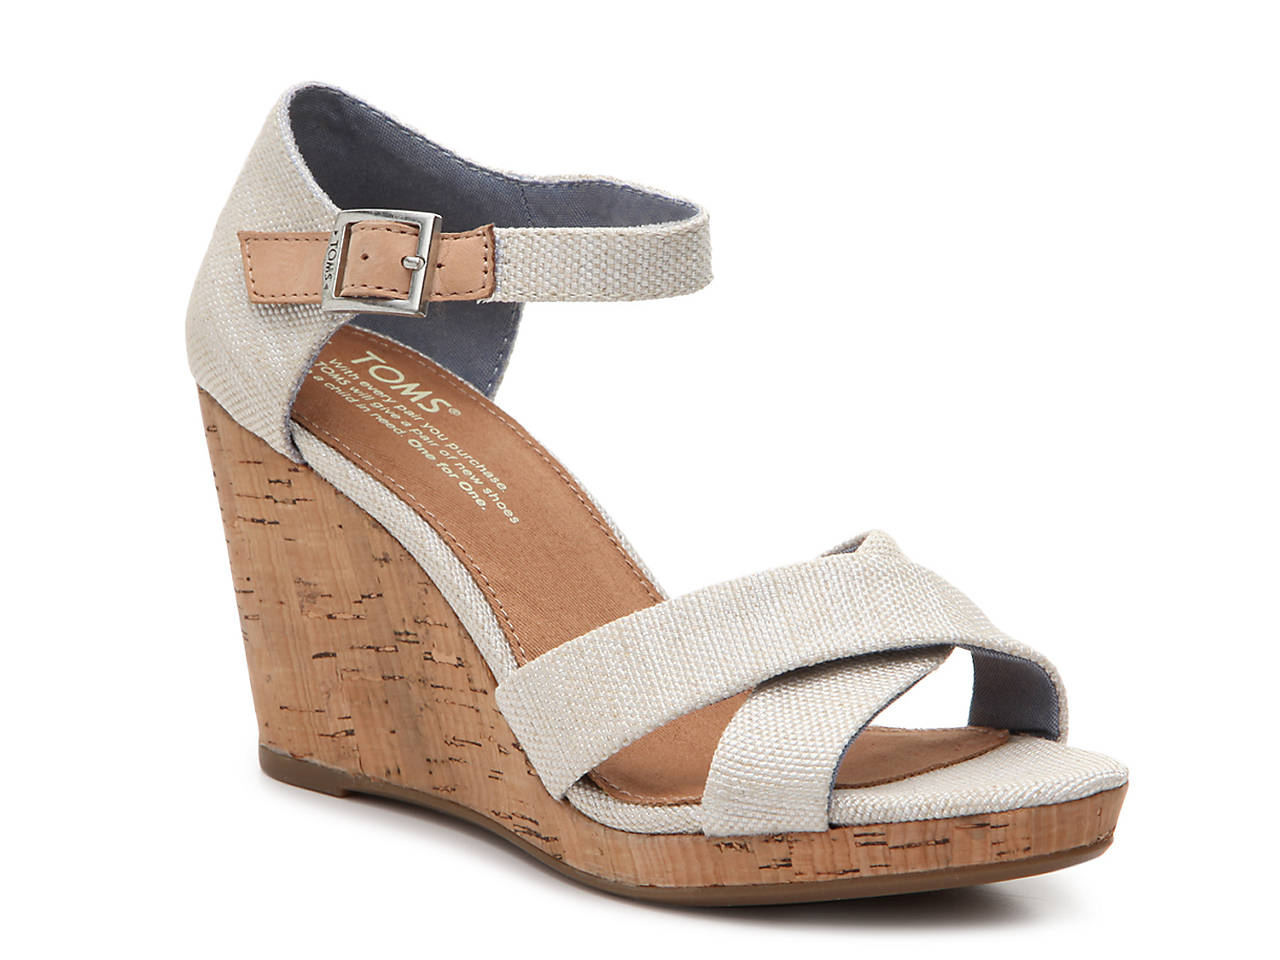 02259a3f9ed TOMS Sienna Wedge Sandal Women s Shoes